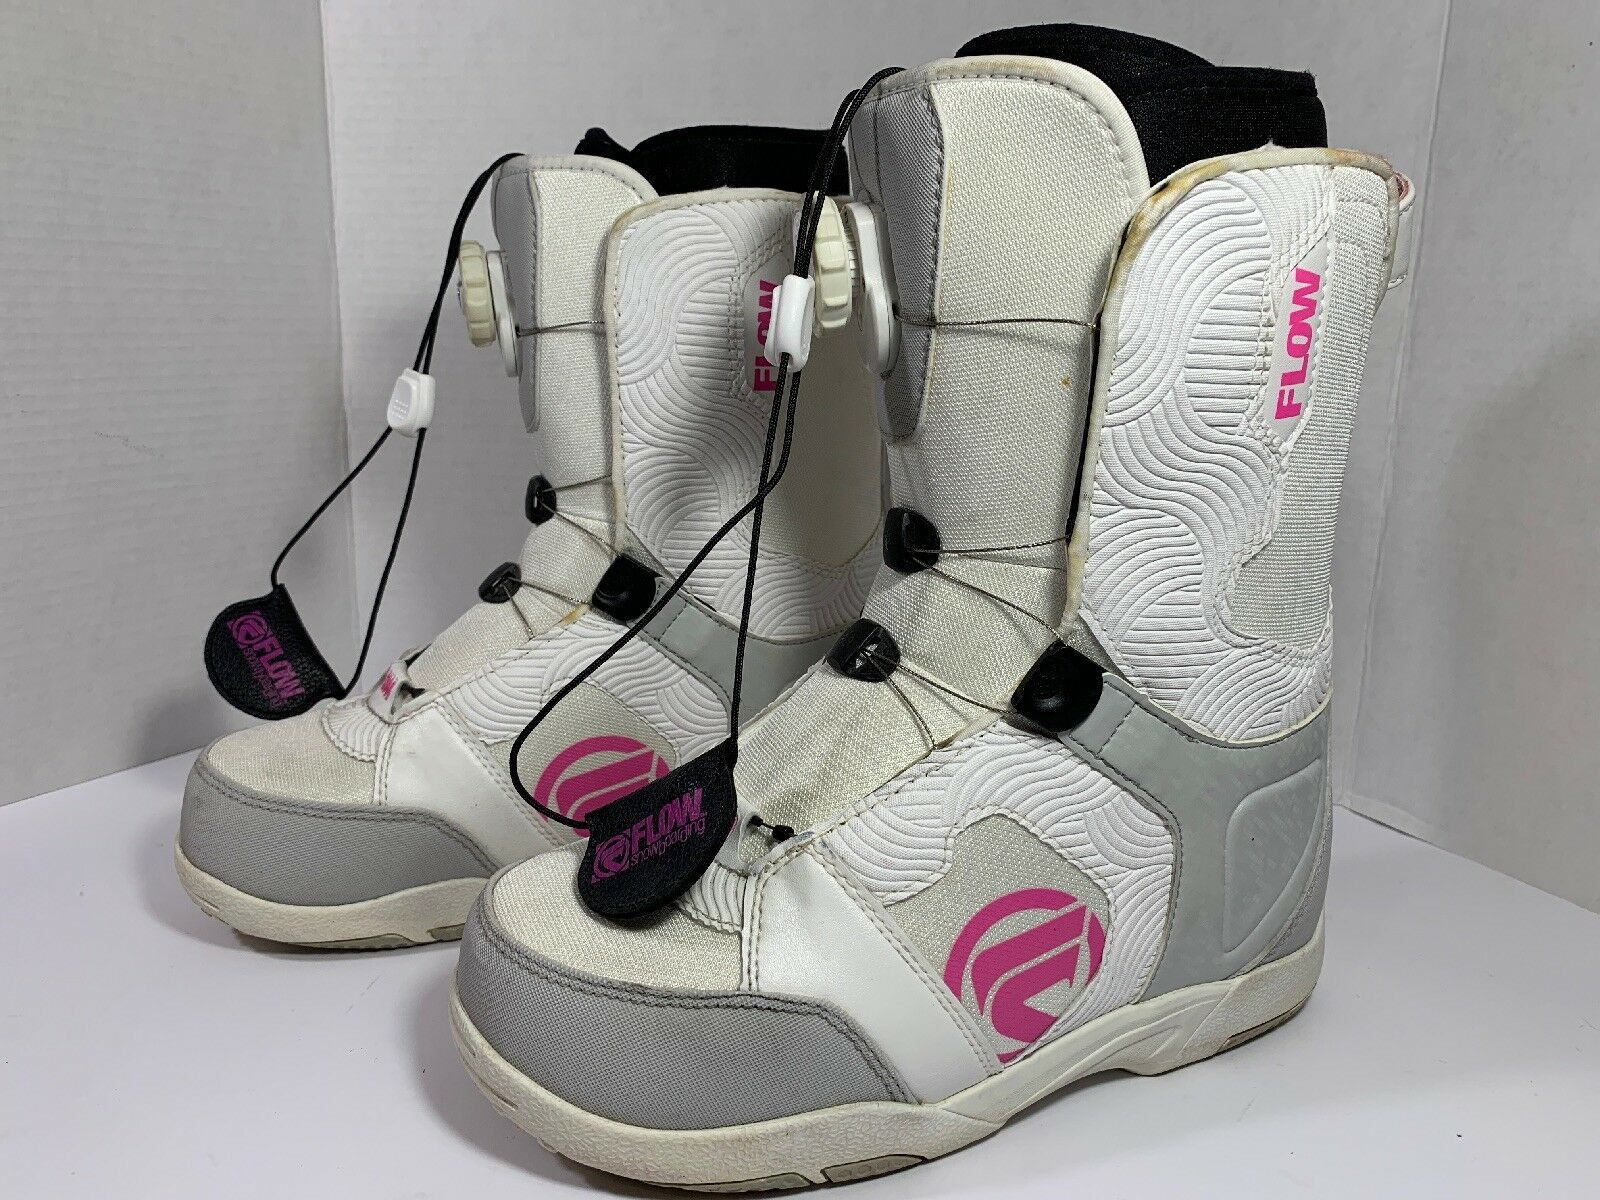 Flow LOTUS  WOMEN'S Boa Snowboard Boots WHITE with Pink SZ US 7 Fast Ship  (CL59)  the latest